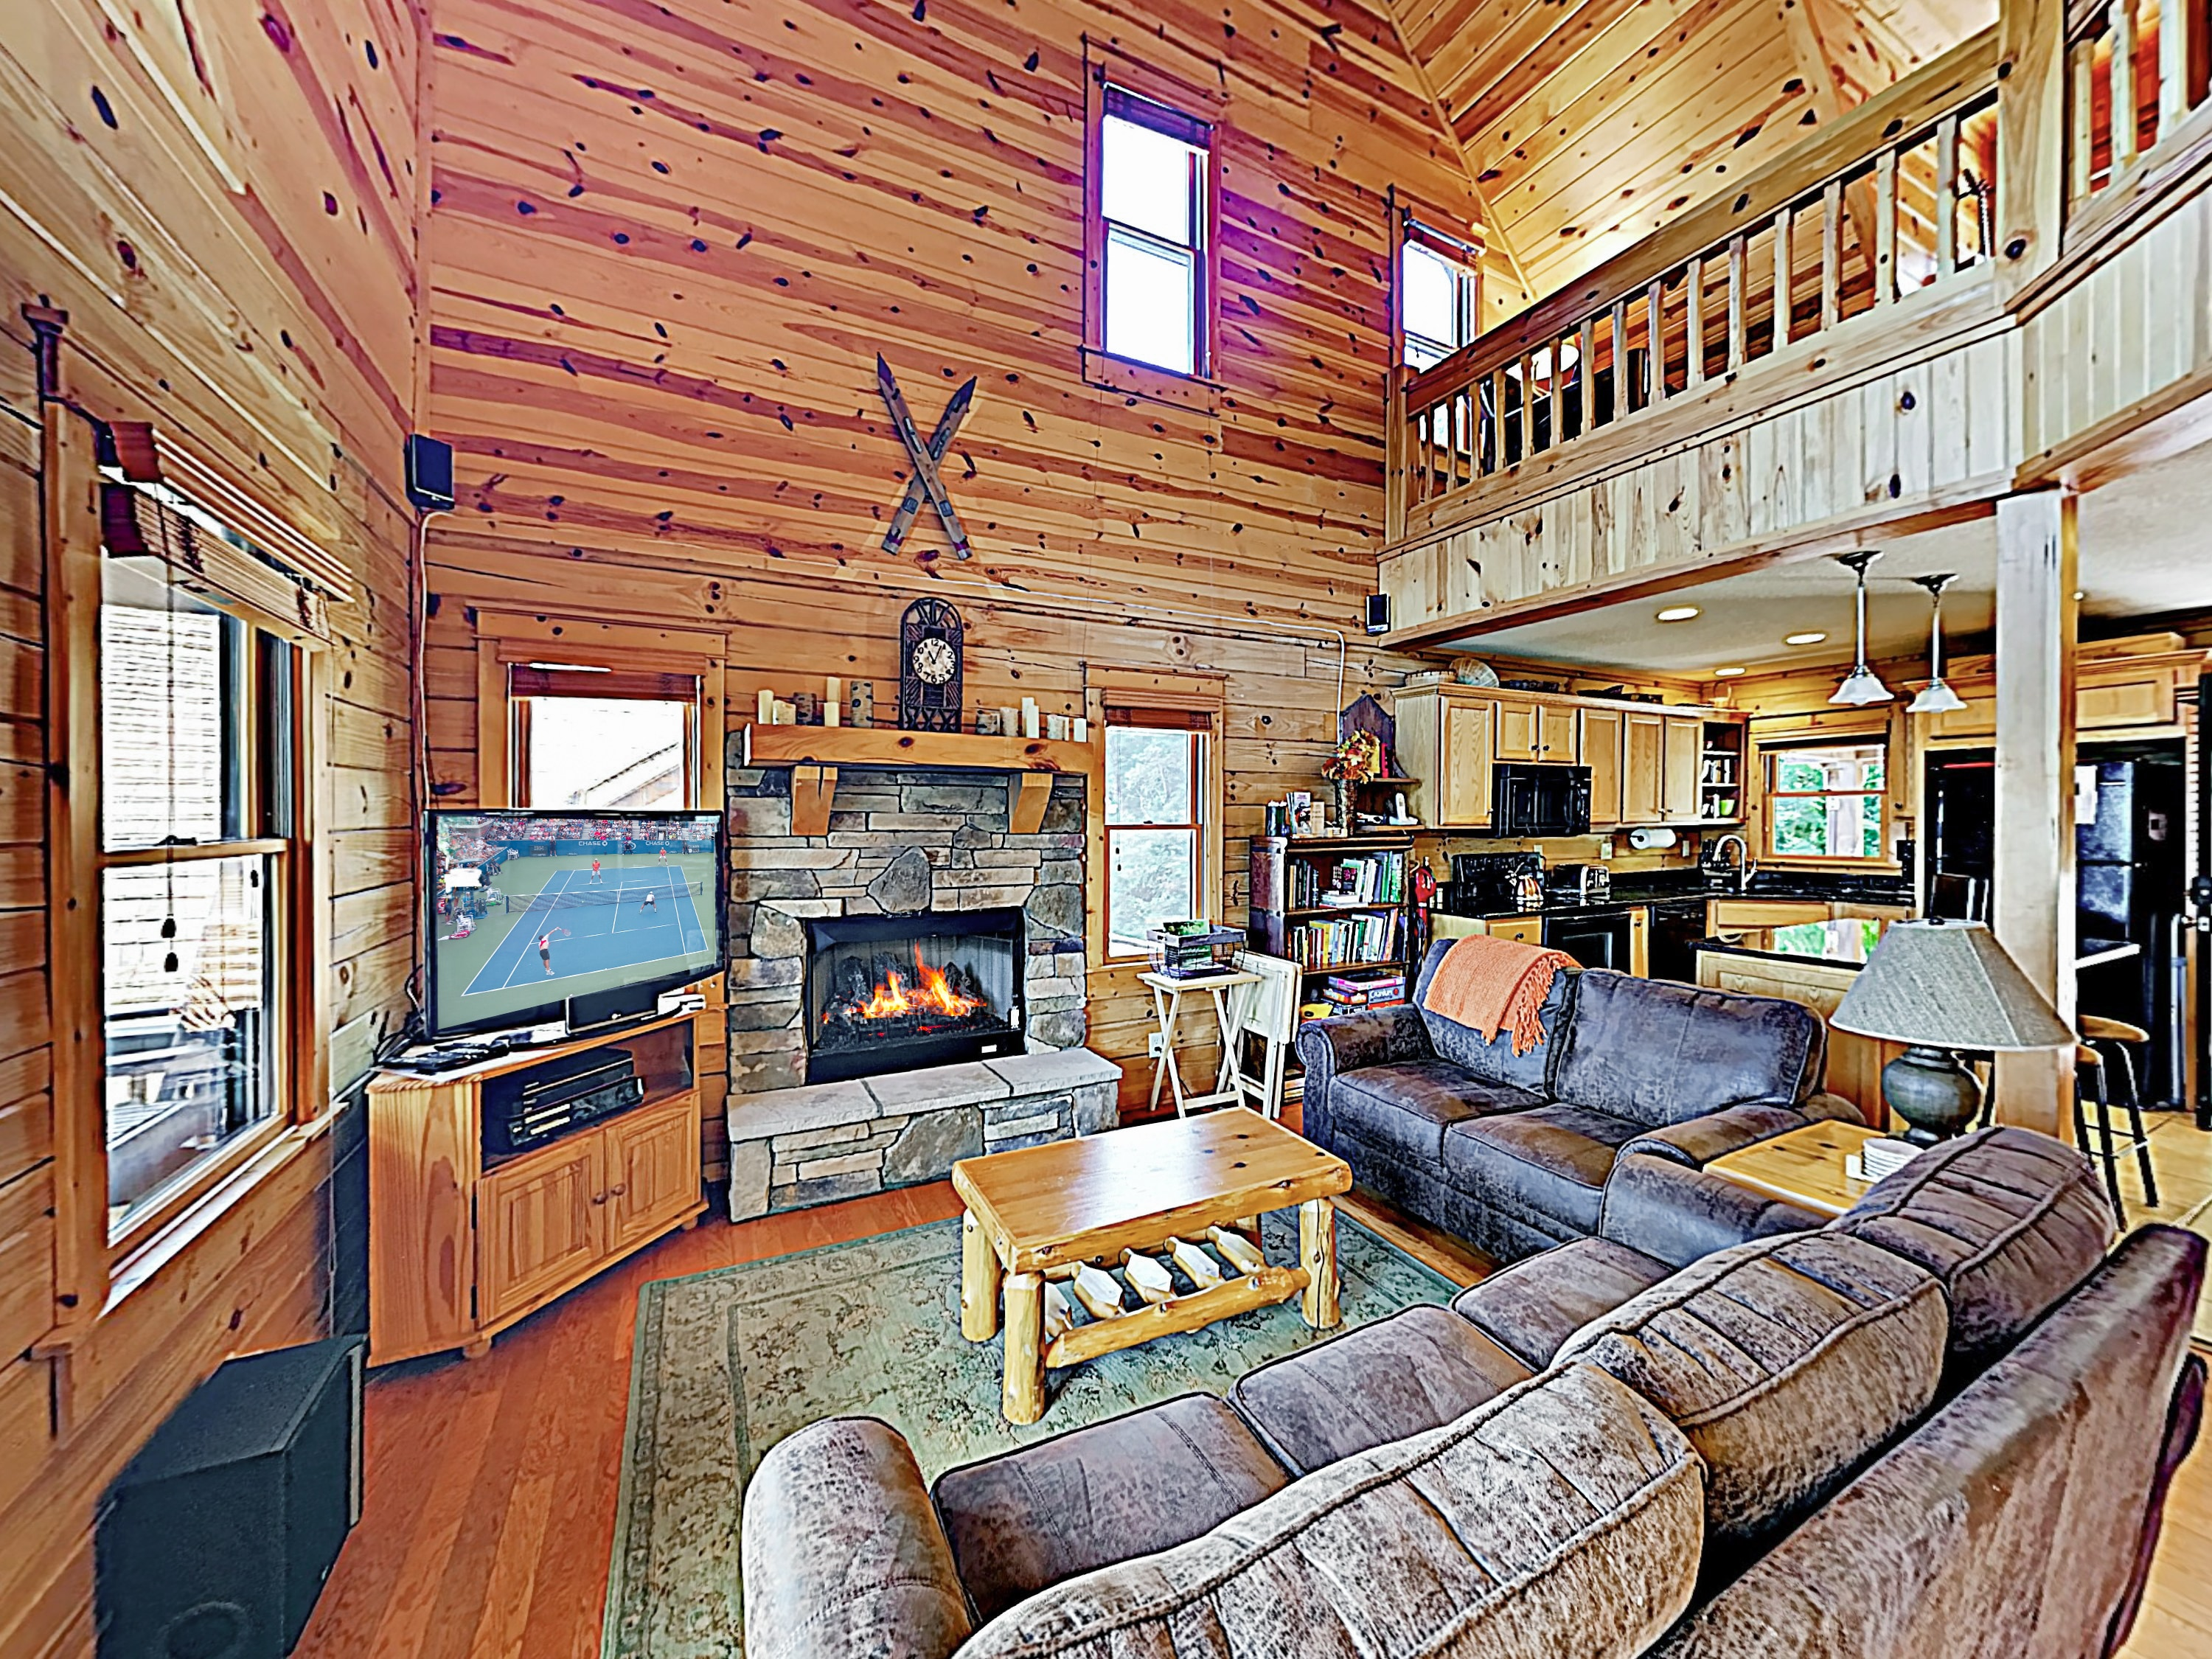 A gas fireplace and authentic mountain decor create a warm, lodge-like ambience in the living area.